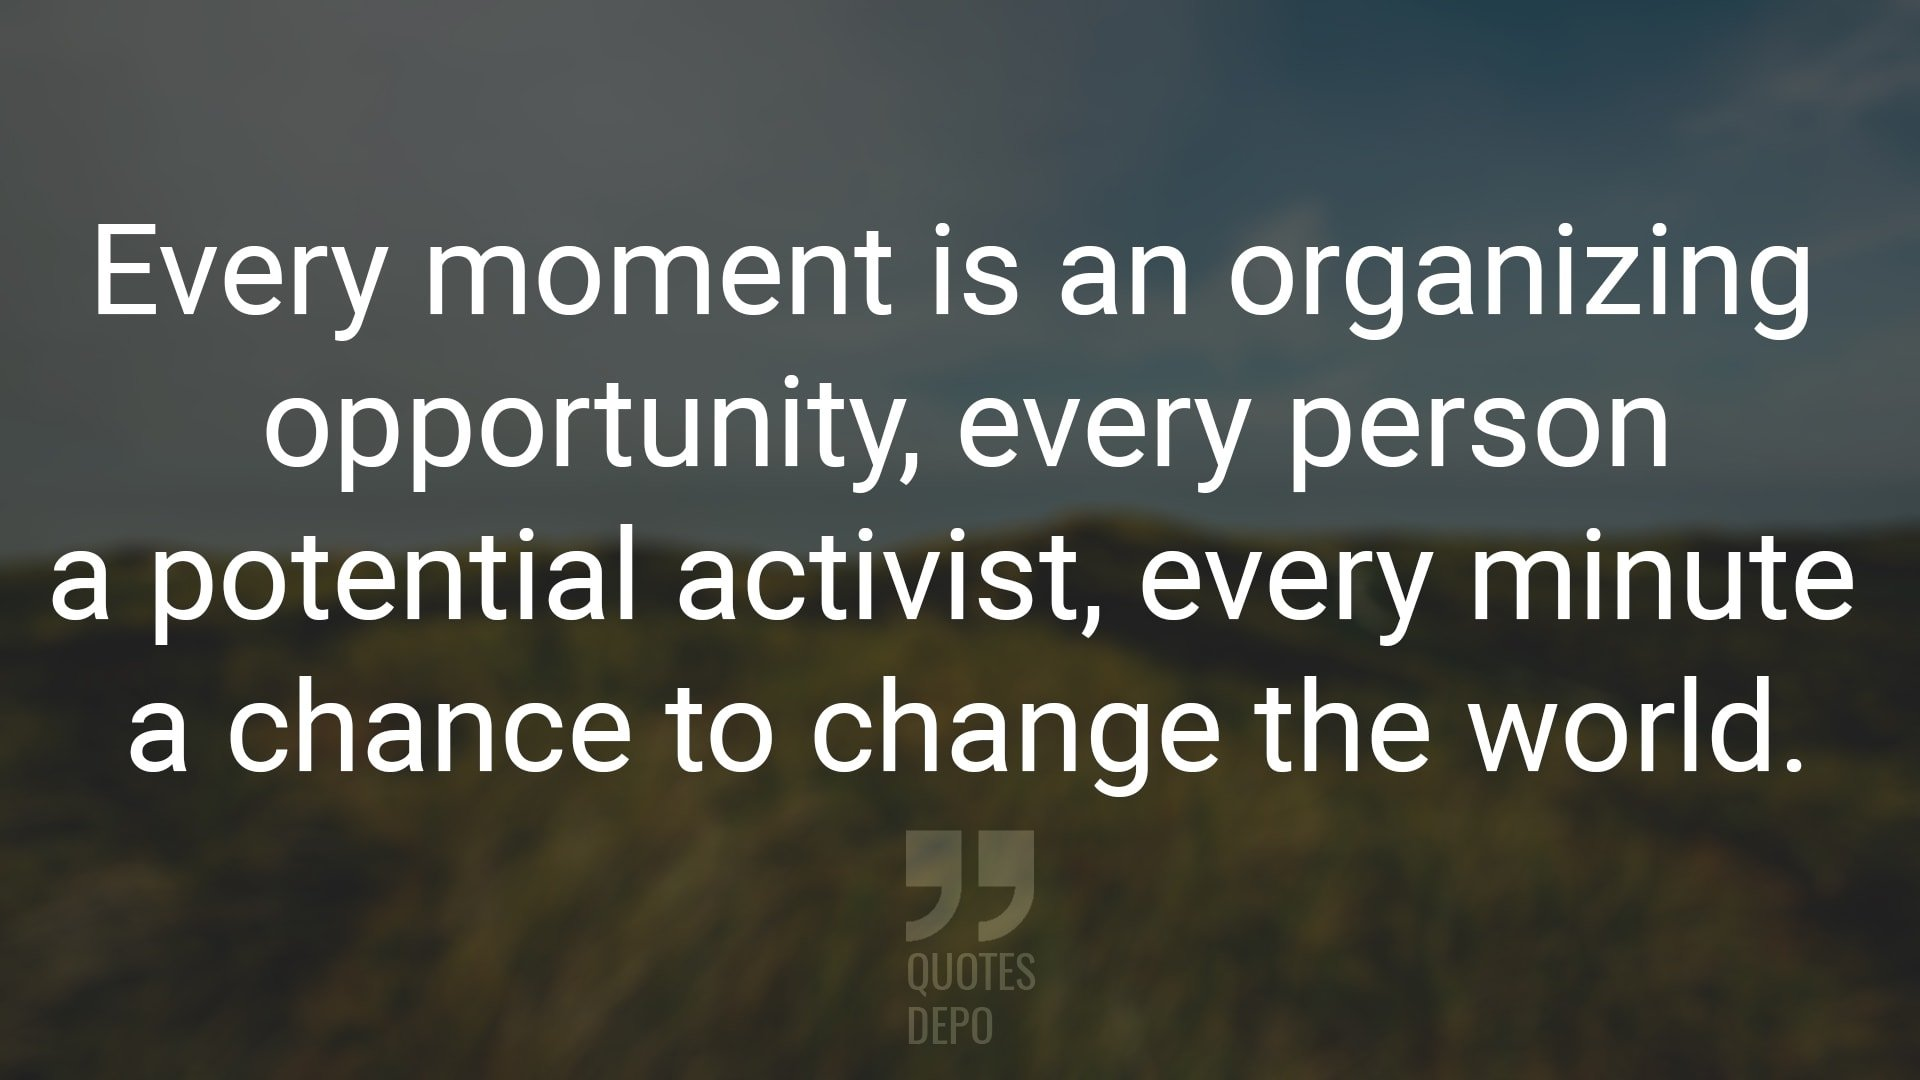 Every Moment is an Organizing Opportunity